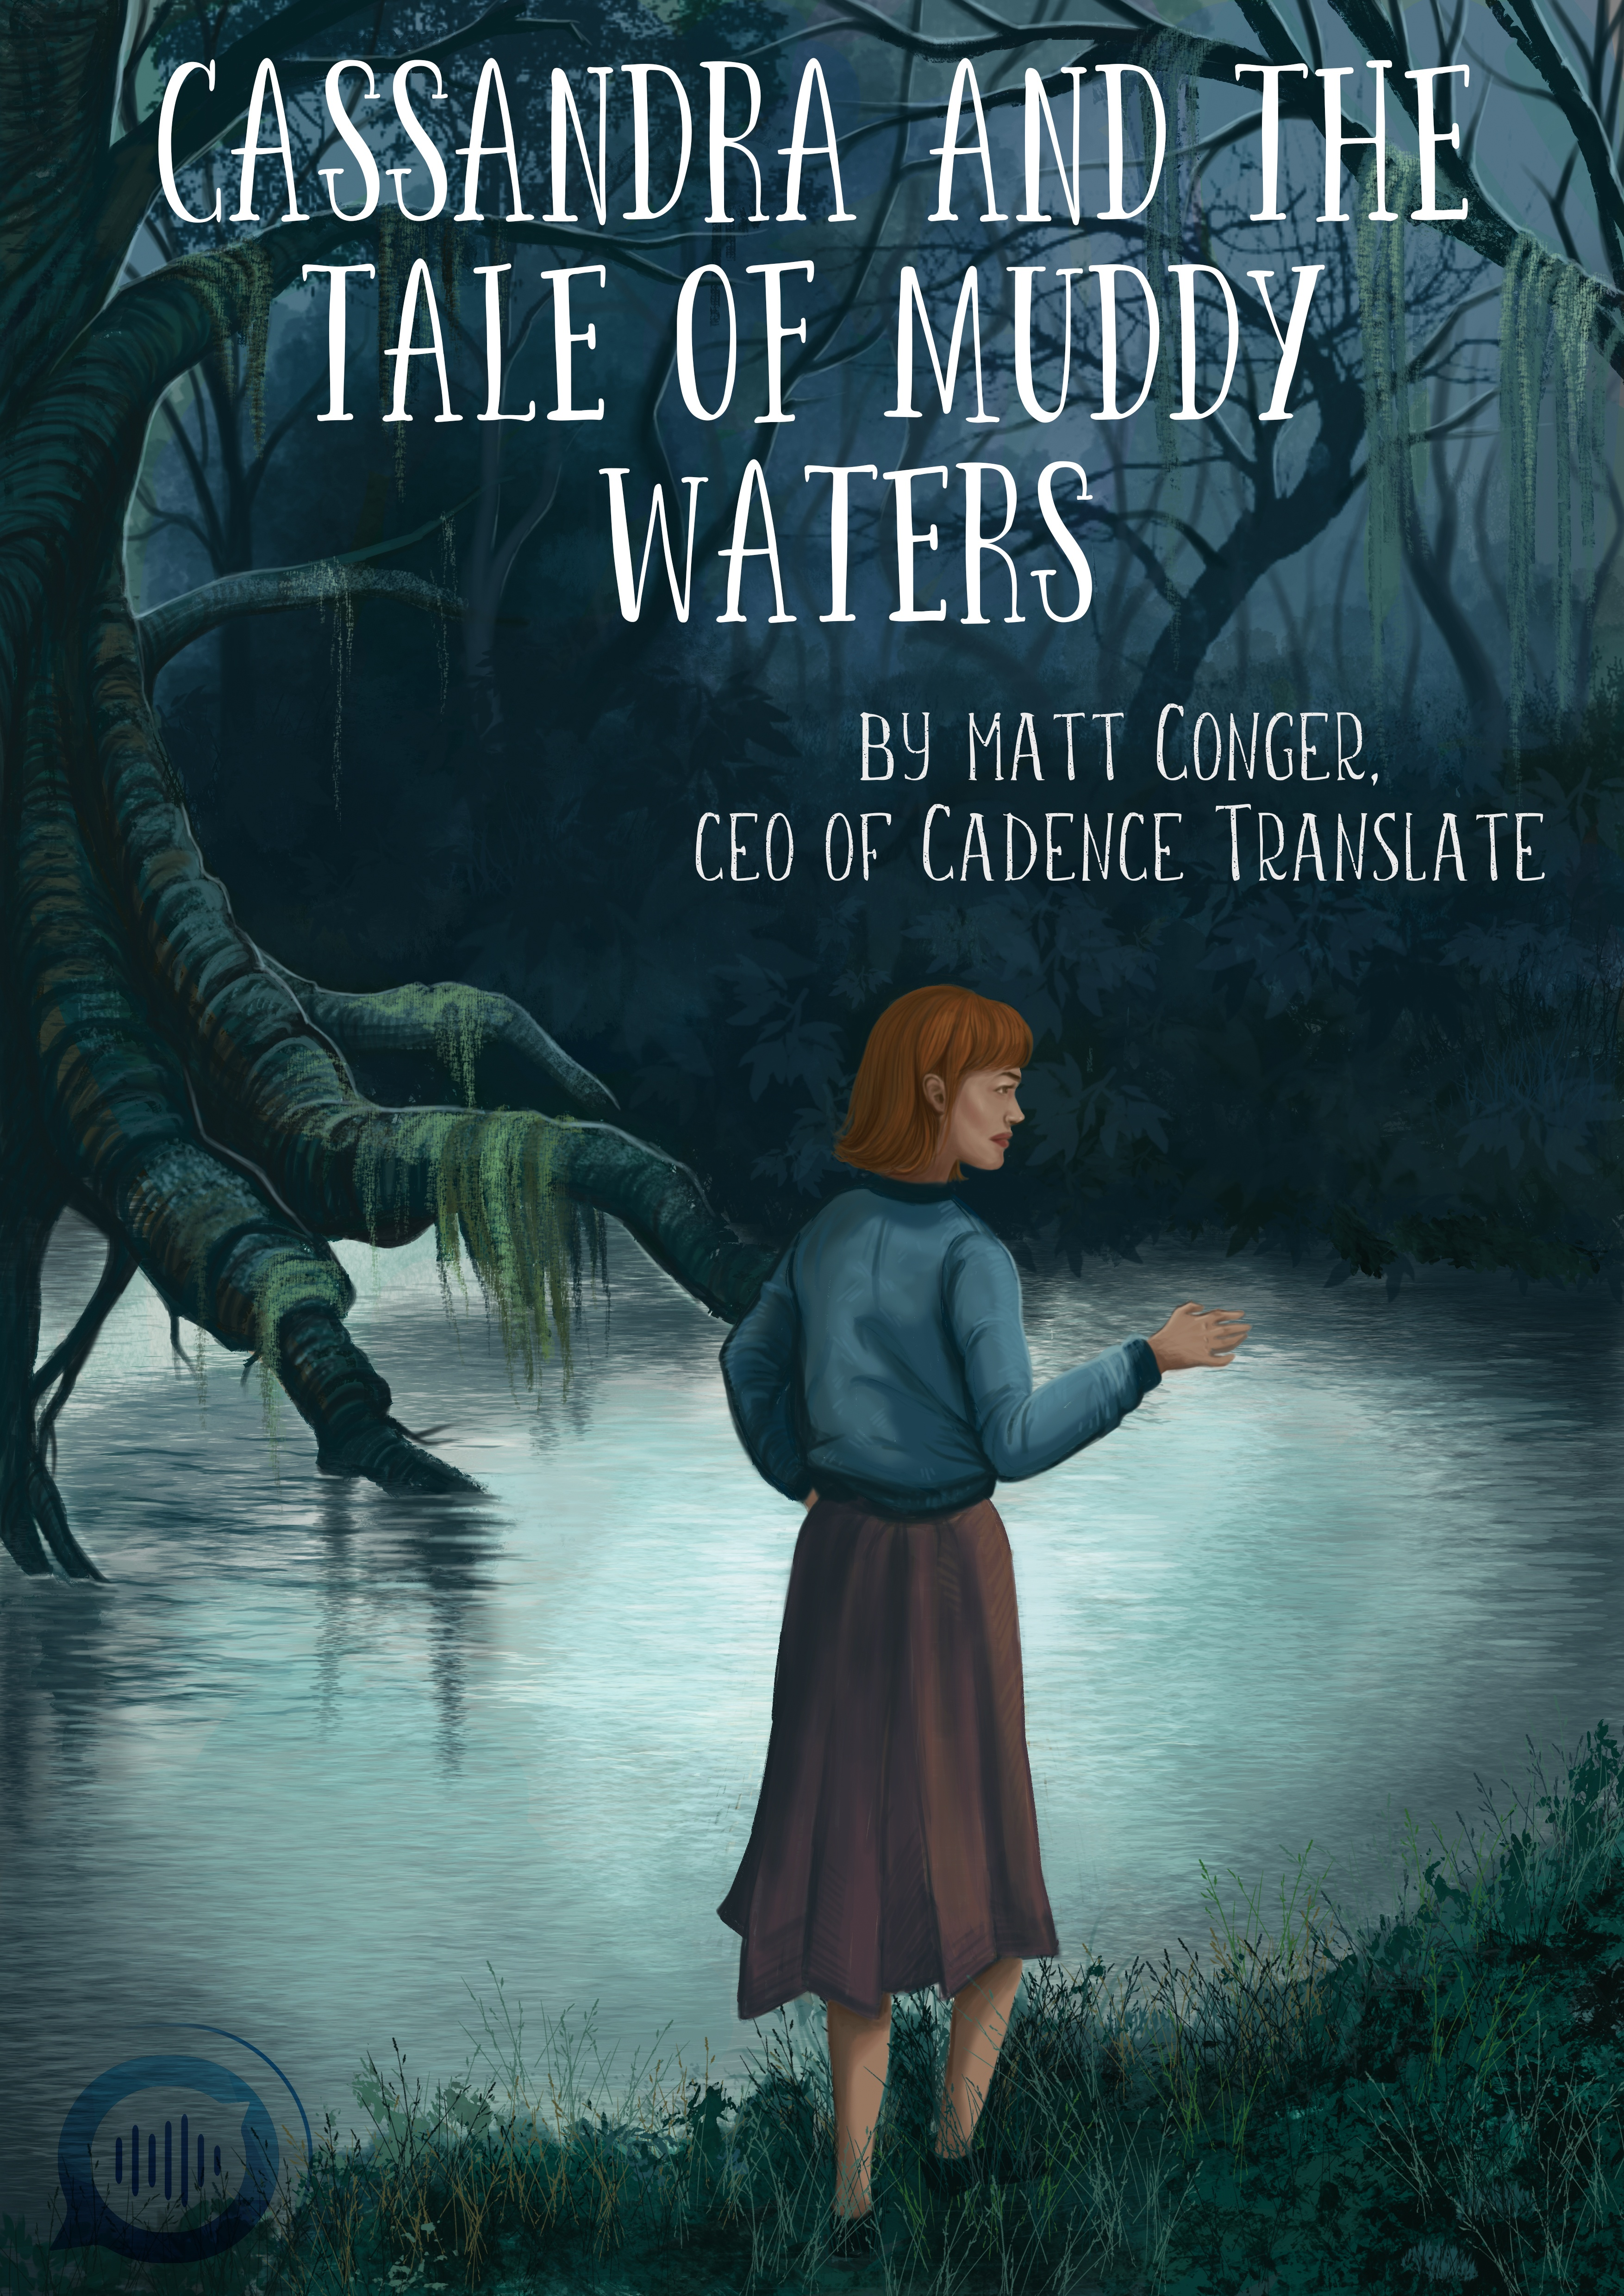 Cassandra and the tale of muddy waters